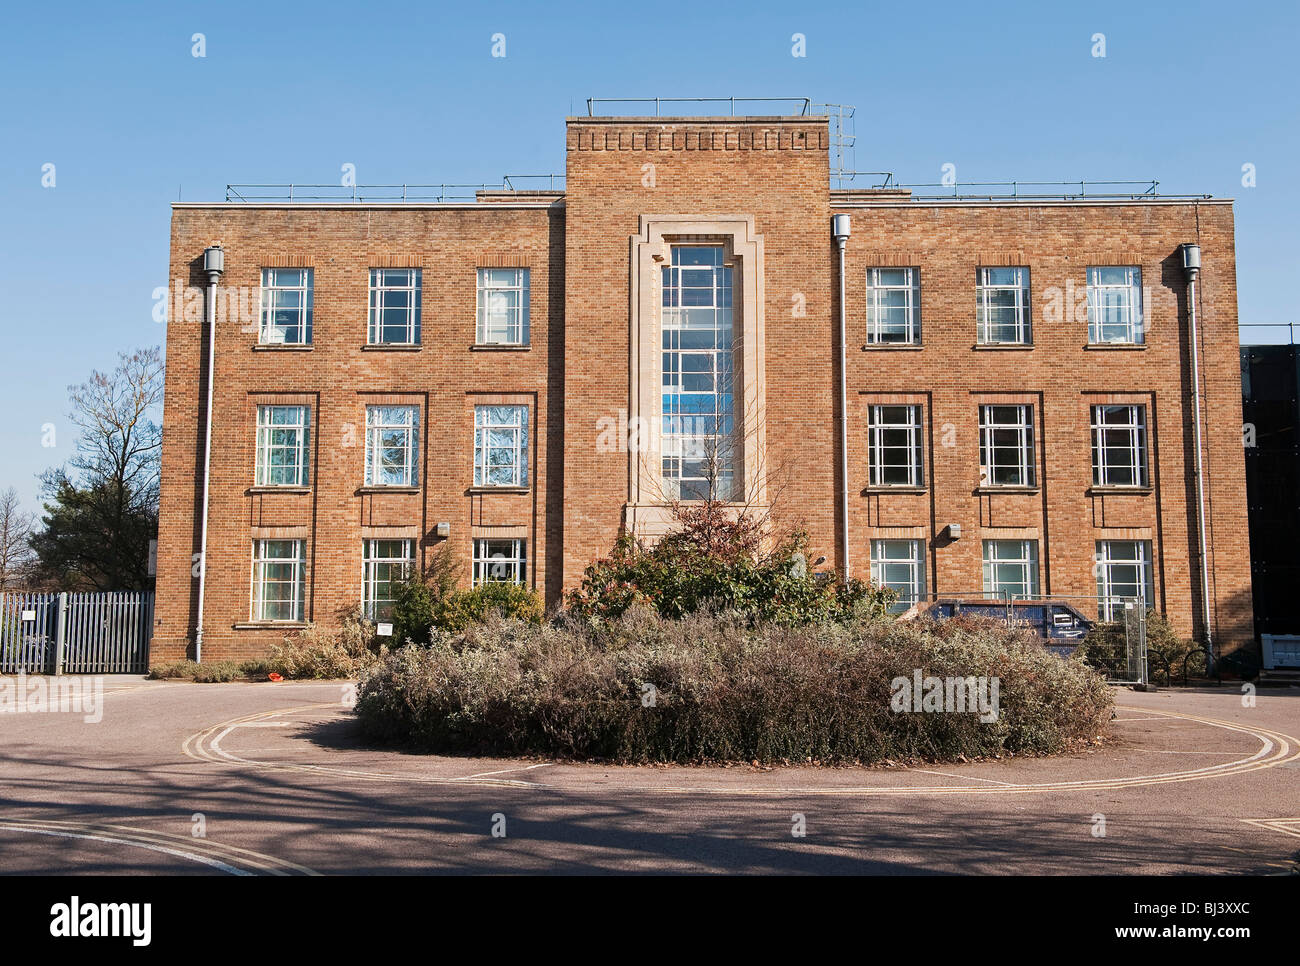 The Clarendon Laboratory, Oxford, part of the Physics Department. It houses the atomic and laser physics groups - Stock Image